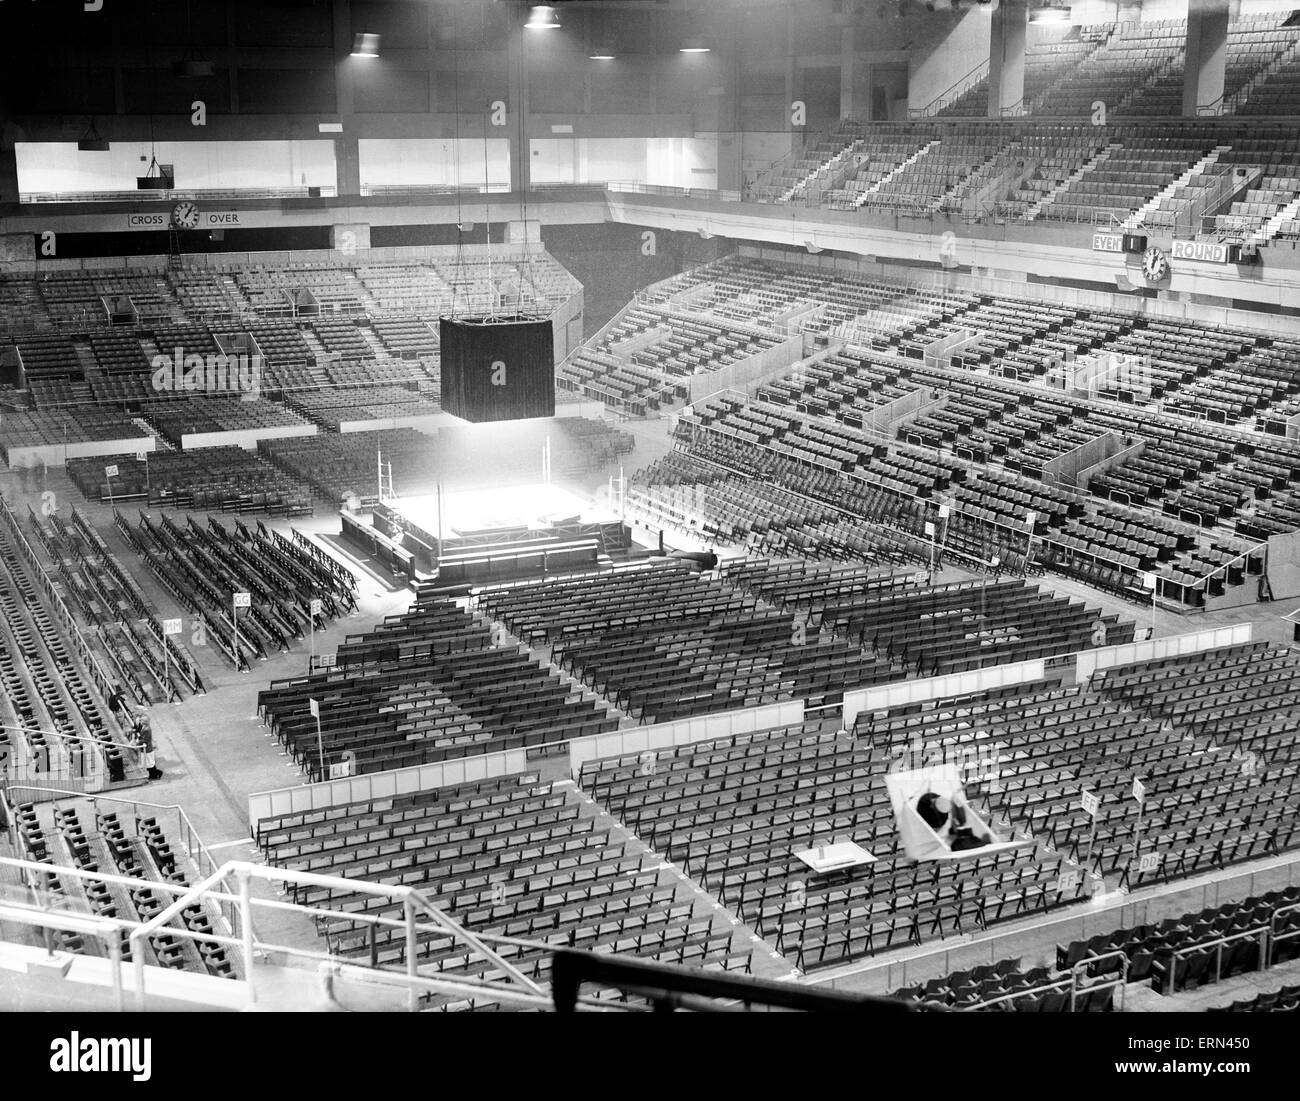 General view of the Arena Empress hall for Freddie Mills vs Joey Maxim Light Heavyweight Championship of the World - Stock Image